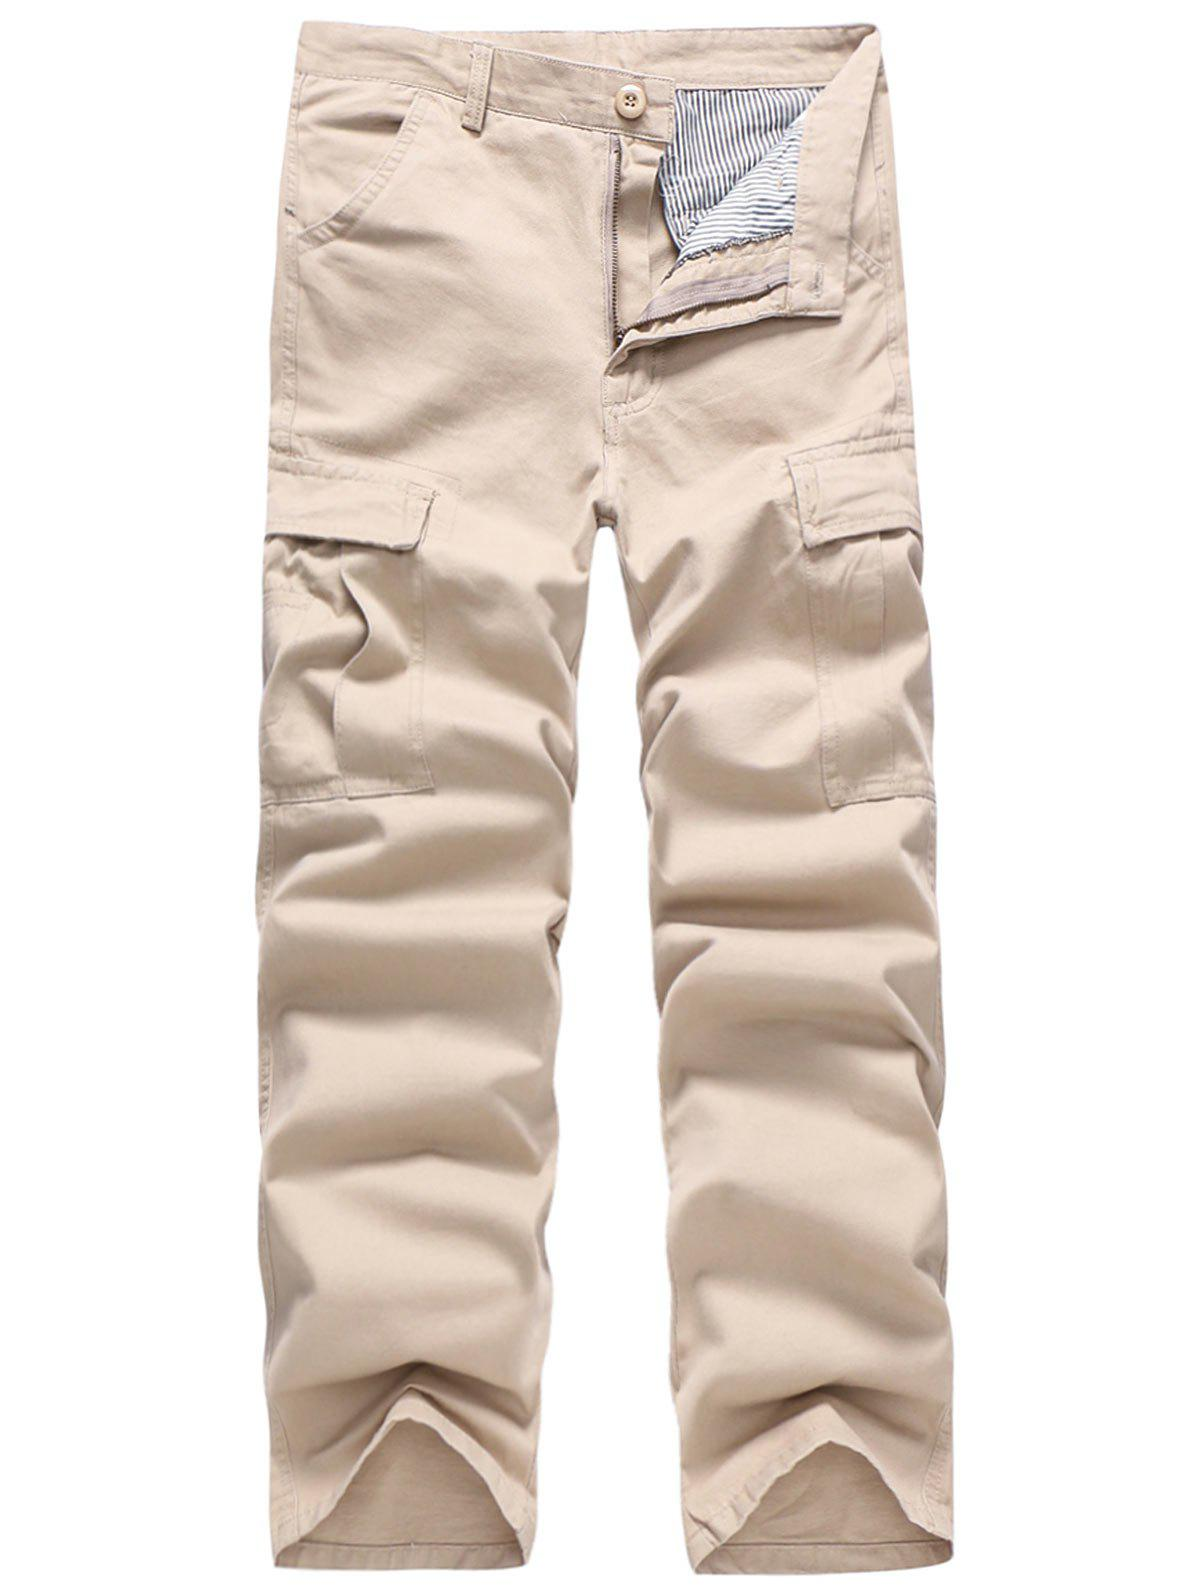 Affordable Solid Color Simple Pockets Cargo Pants